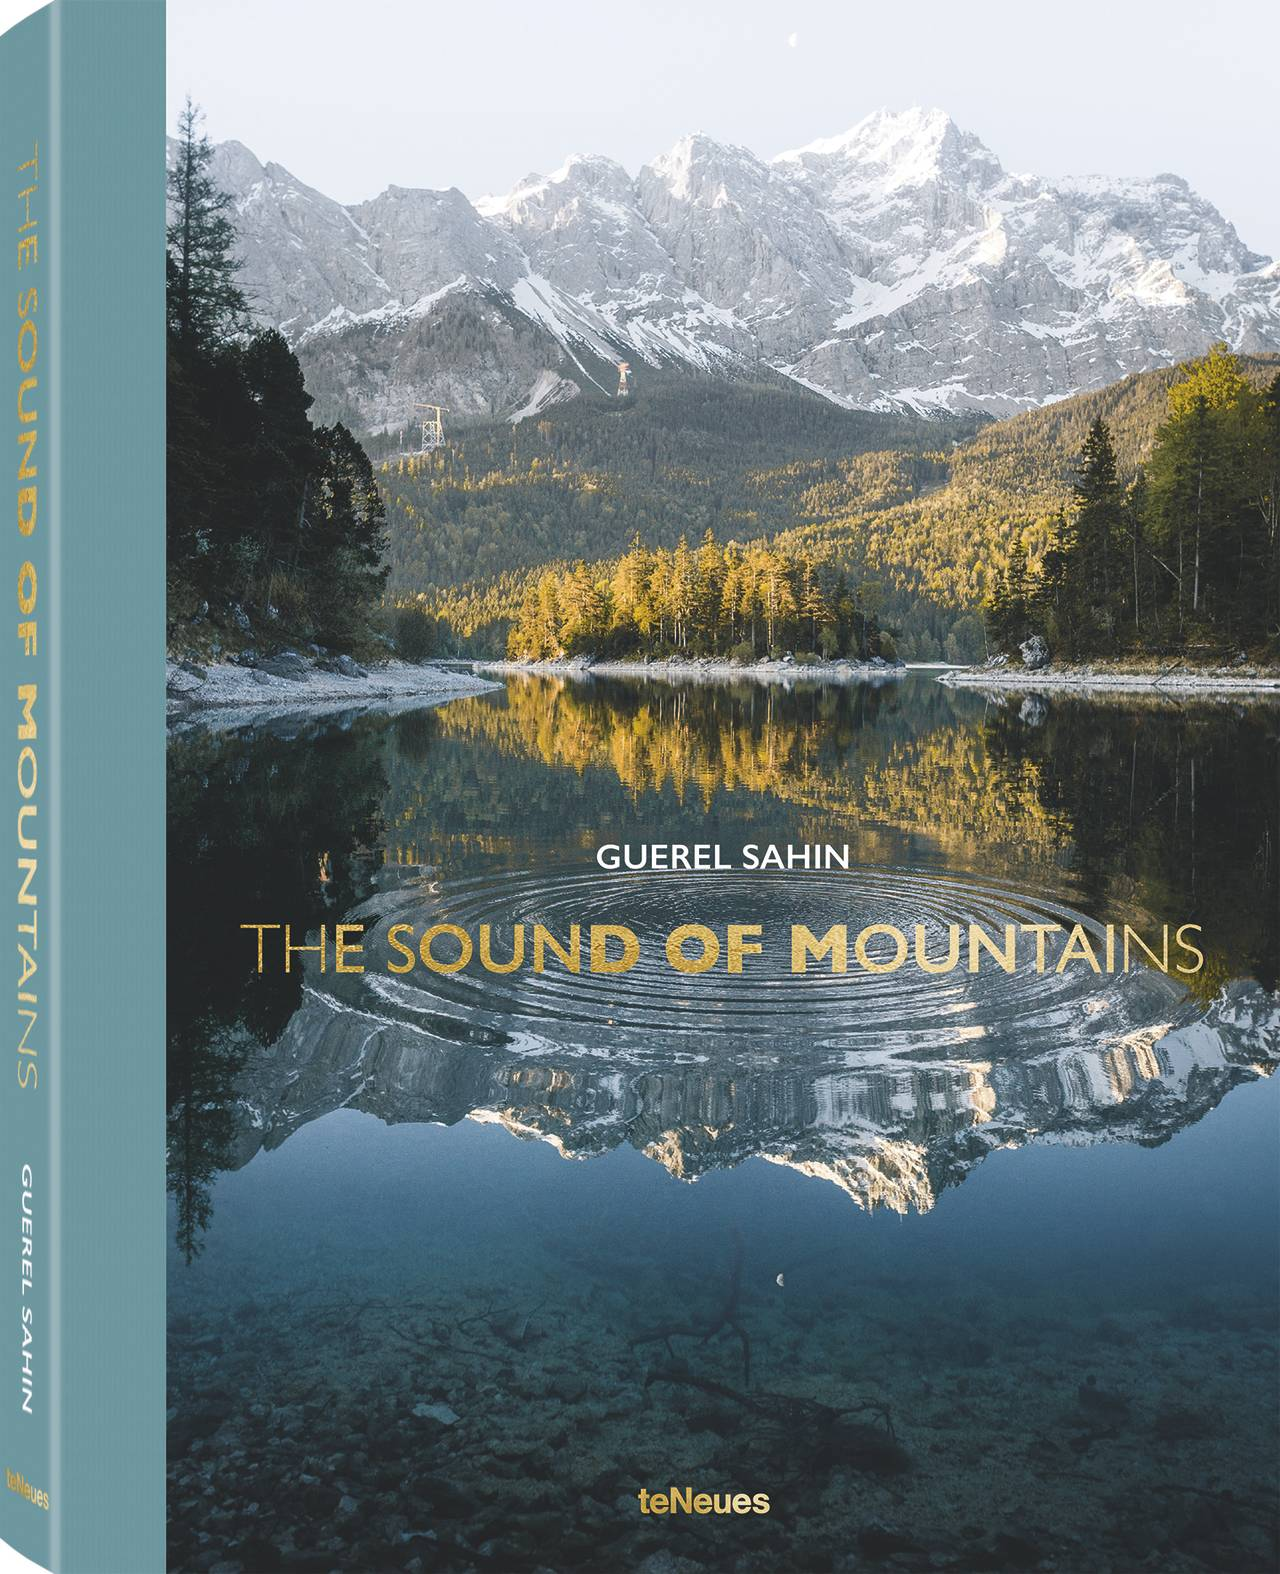 © The Sound of Mountains by Guerel Sahin, published by teNeues, www.teneues.com, Eibsee and Zugspitze, Bavaria, Germany, Photo © 2018 Guerel Sahin / Palatina Media Gbr. All rights reserved. www.guerelsahin.com